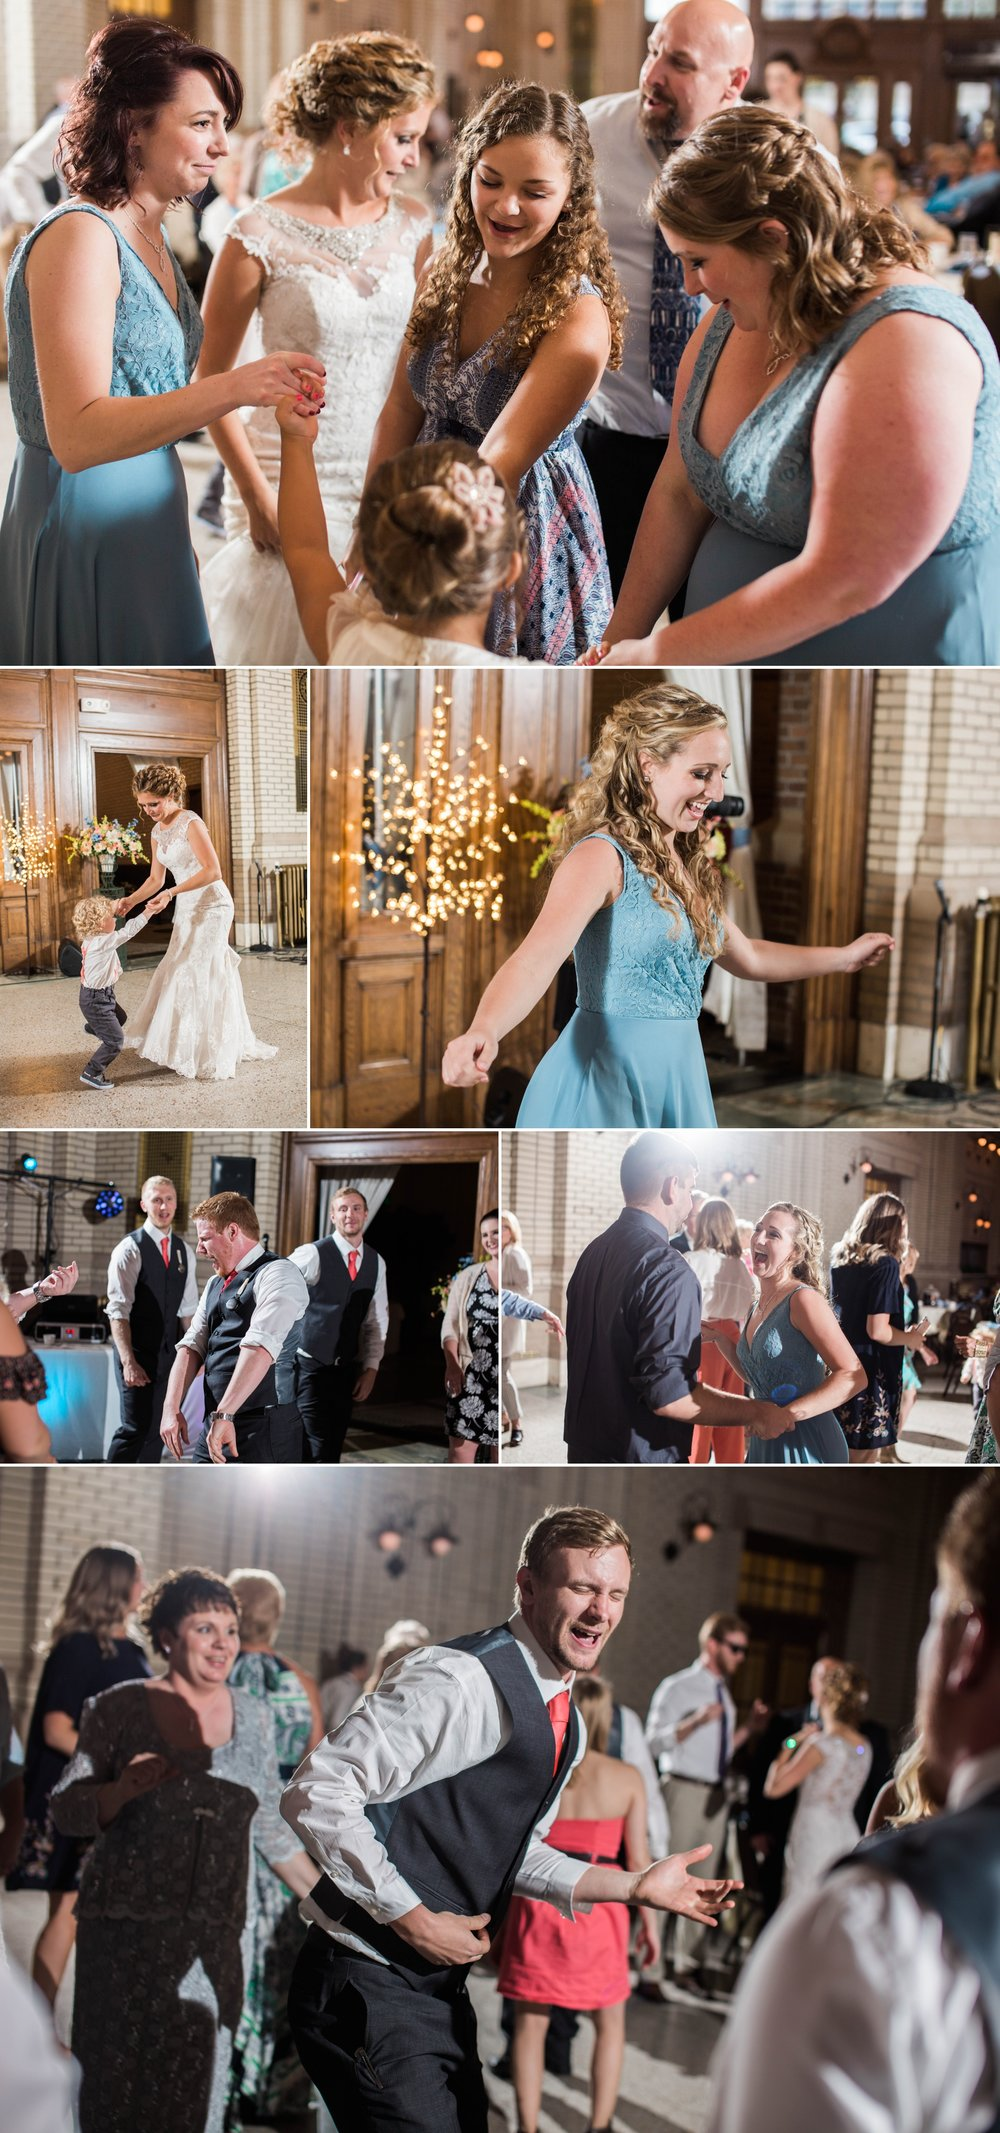 wedding - reception - train station - bride - groom - dance